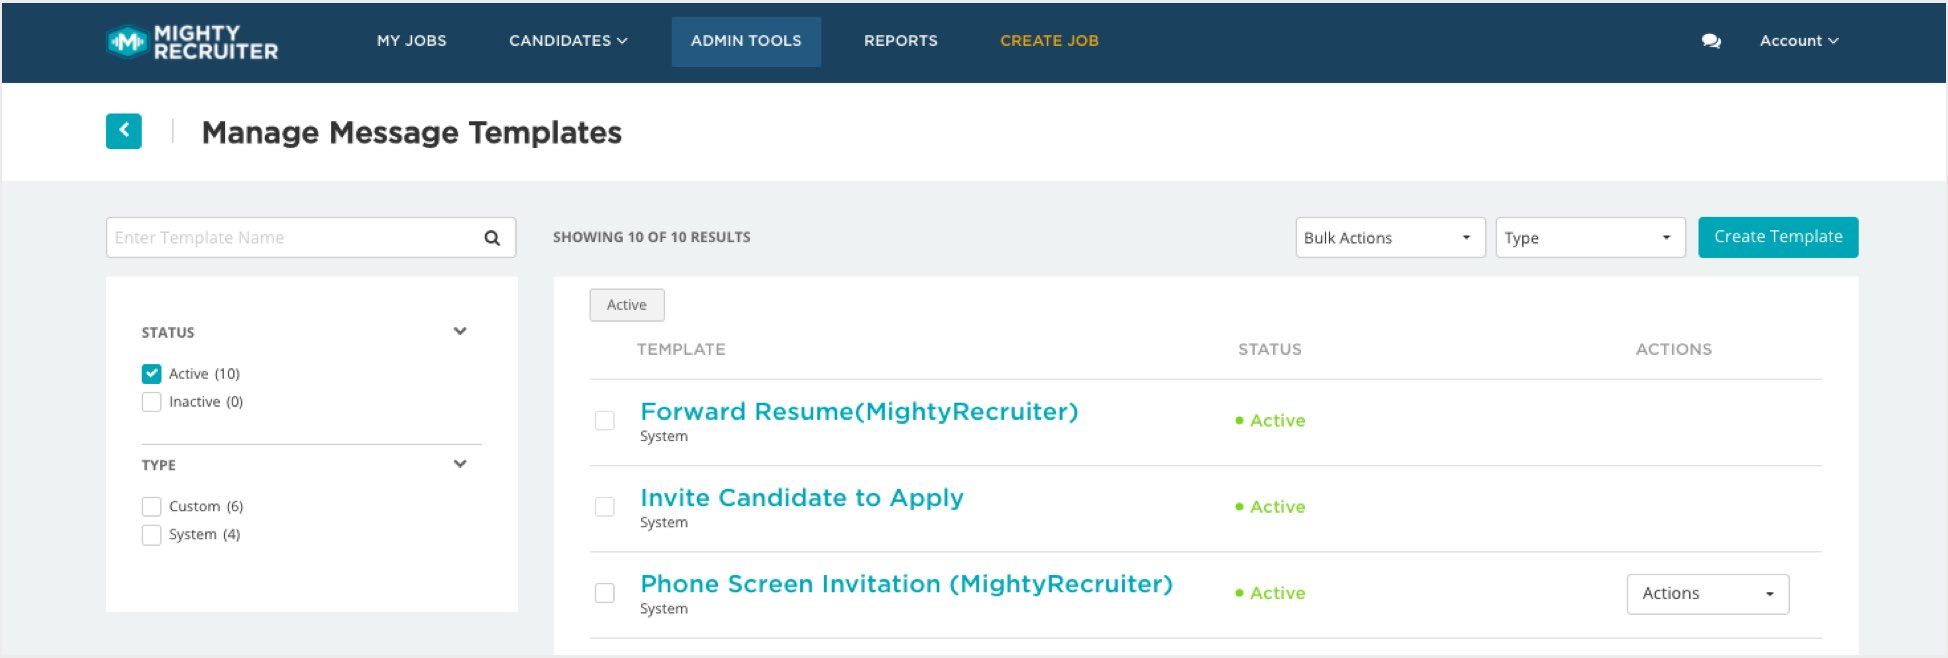 Candidate communication feature in Mighty recruiter